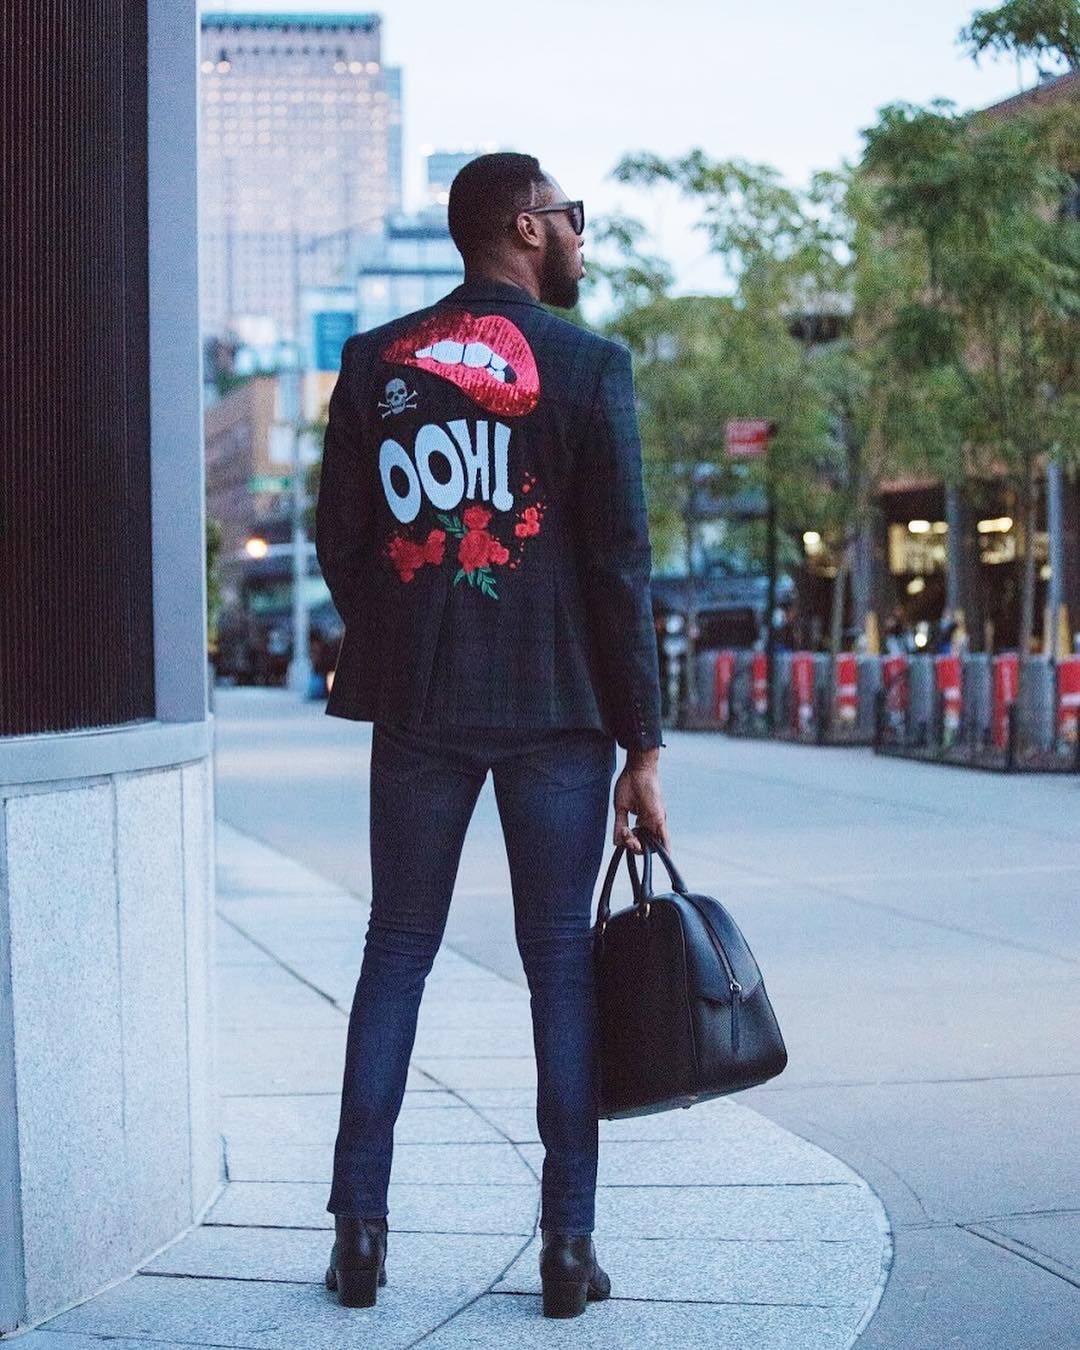 21479877 217563578776058 4850159198454939648 n1 - Nigerians Are Serving Looks At The New York Fashion Week 2017